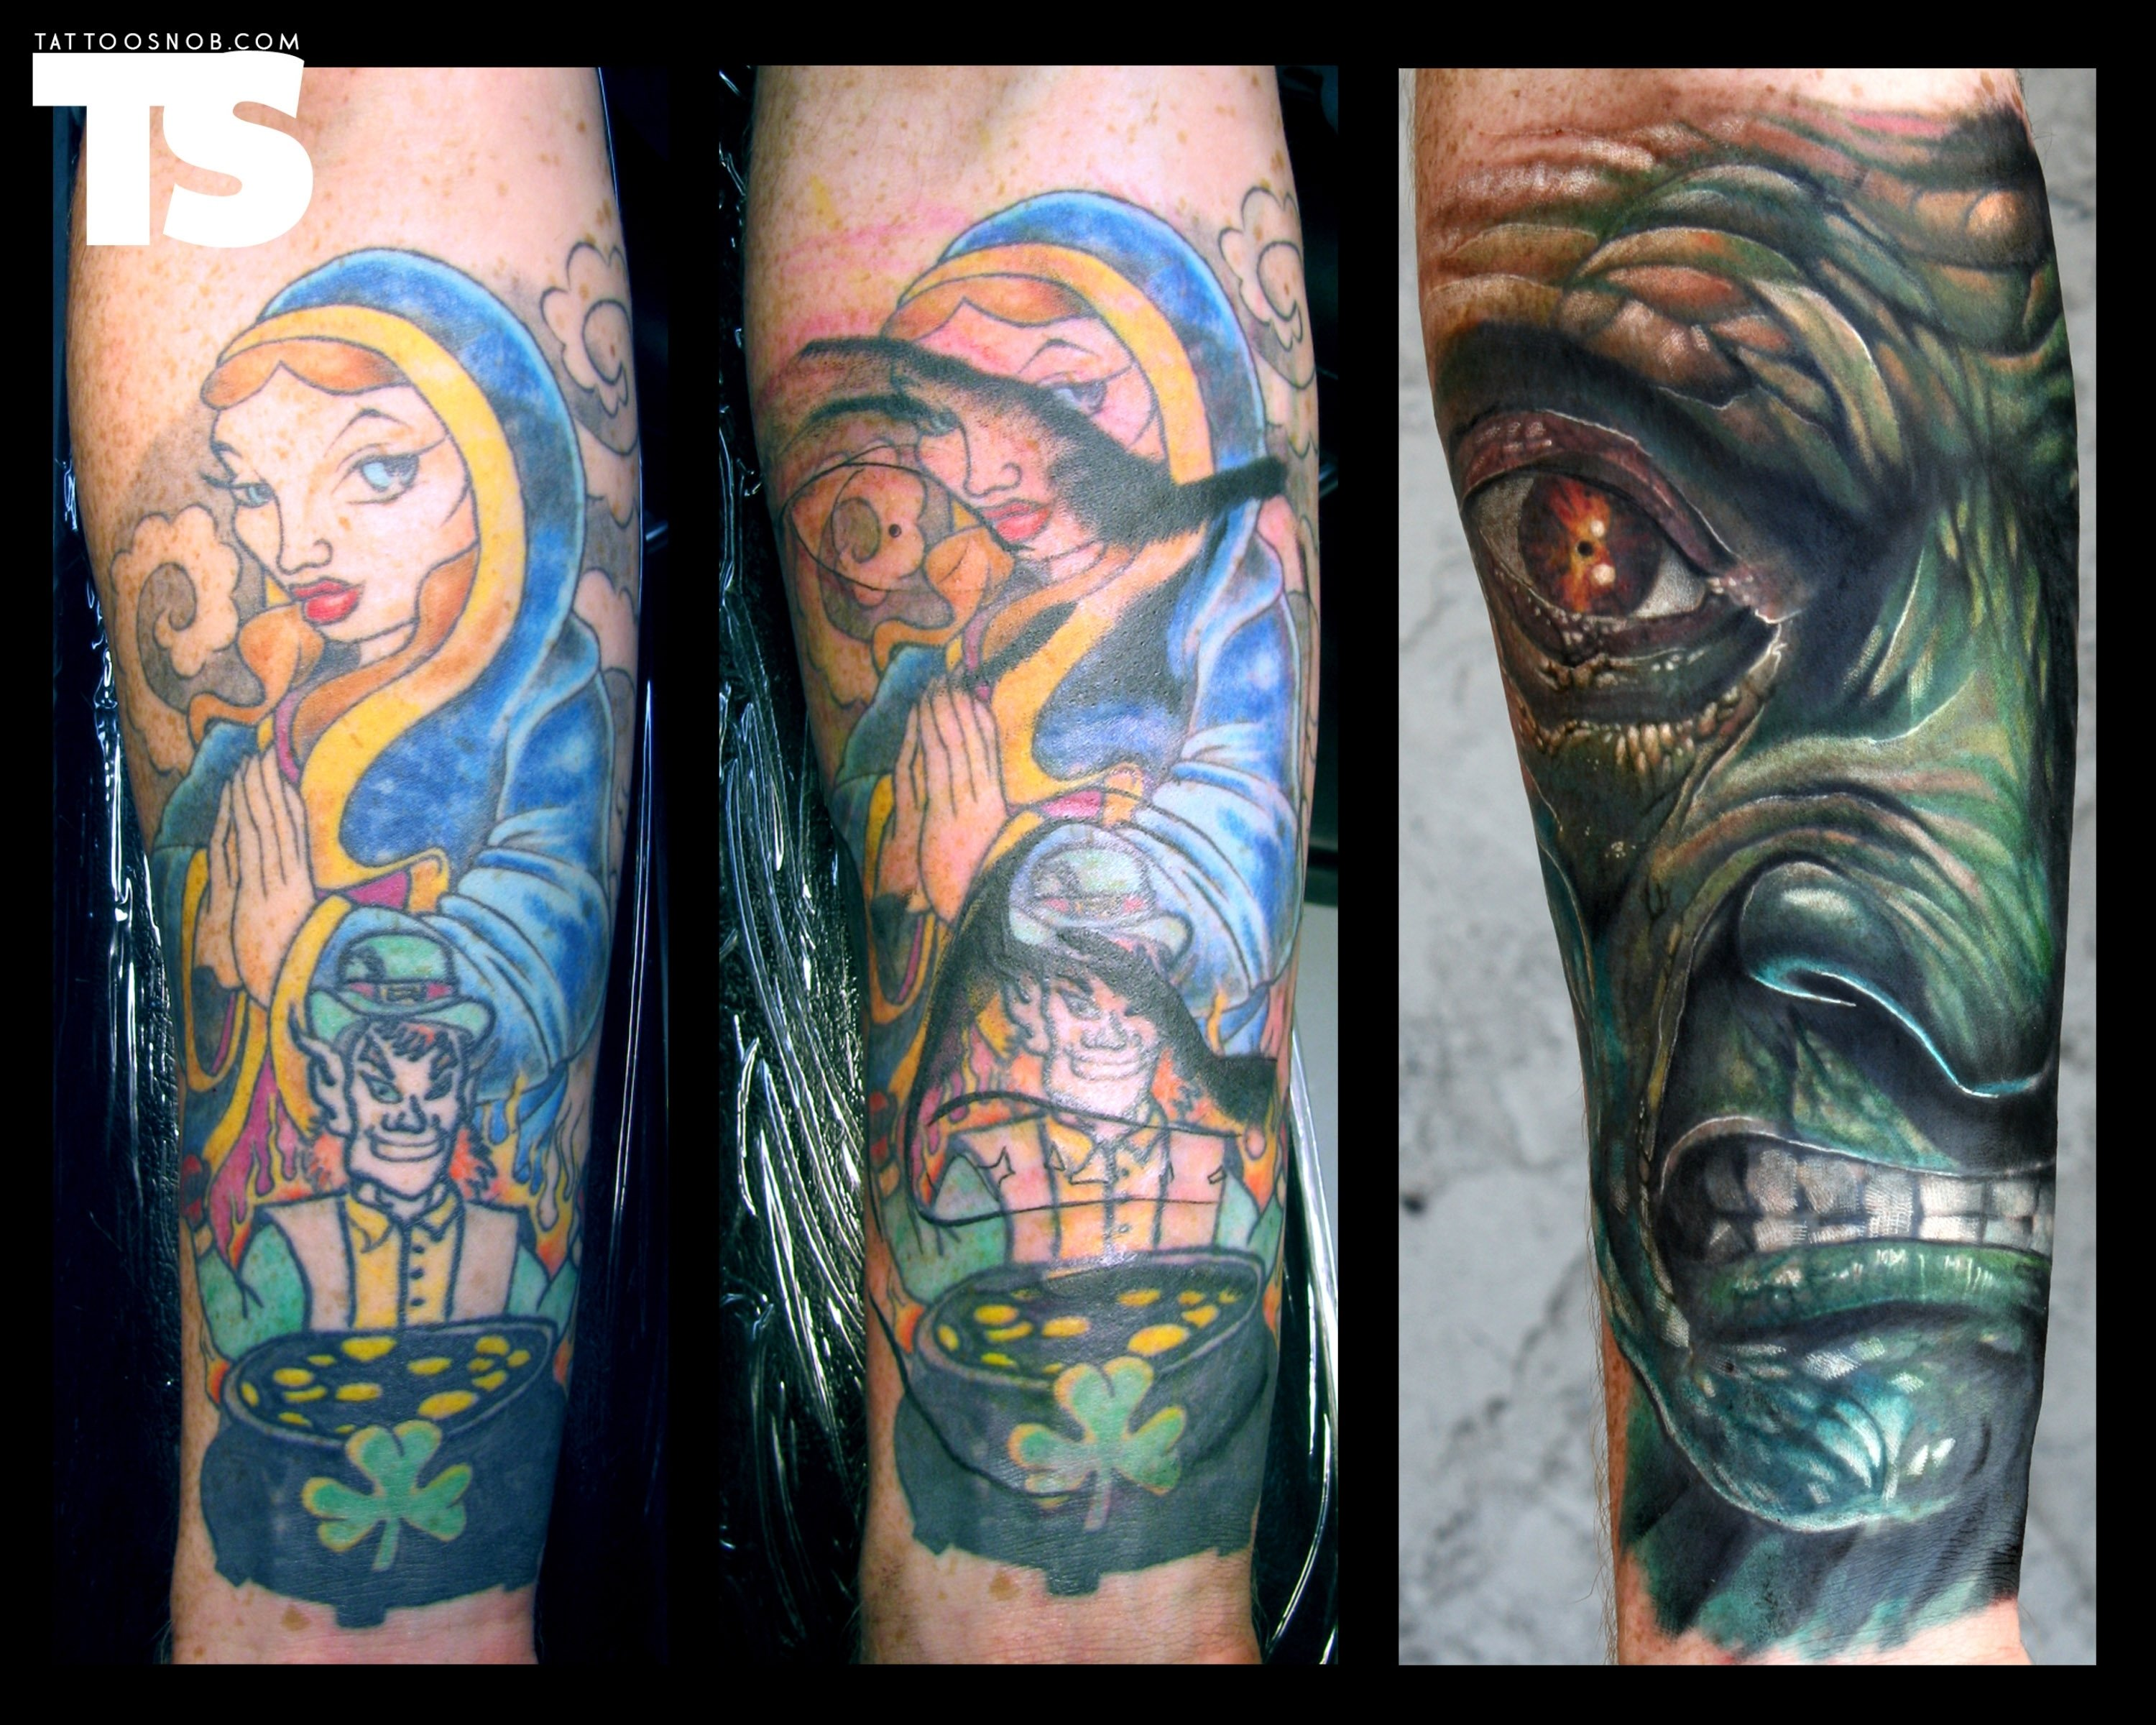 10 Attractive Big Tattoo Cover Up Ideas the best tattoo cover ups of the worst tattoos 1 2020